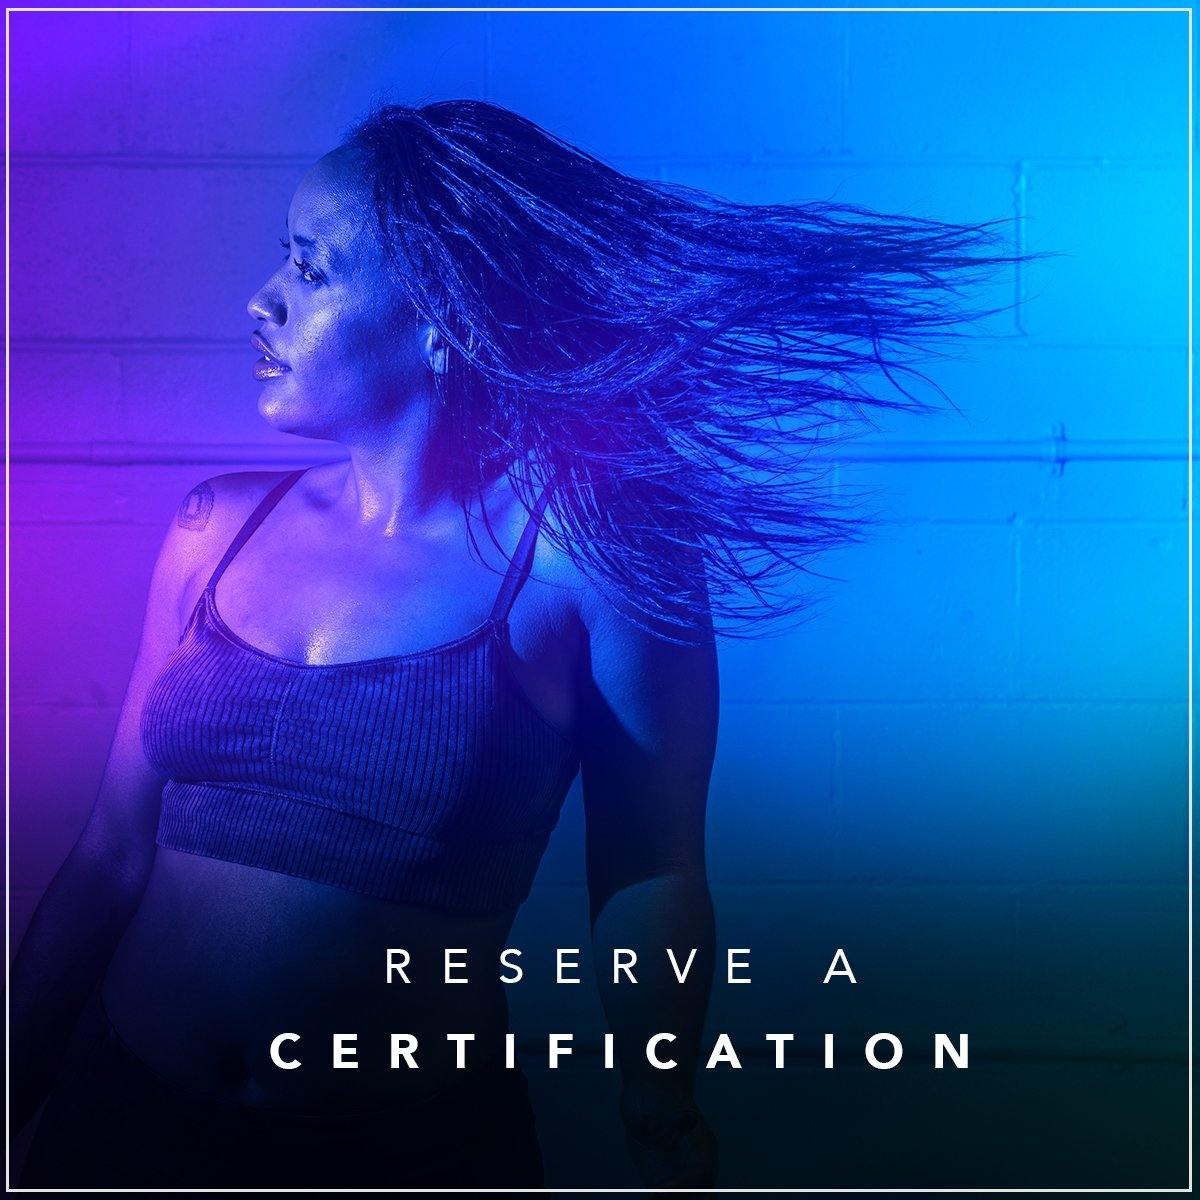 Reserve a Certification